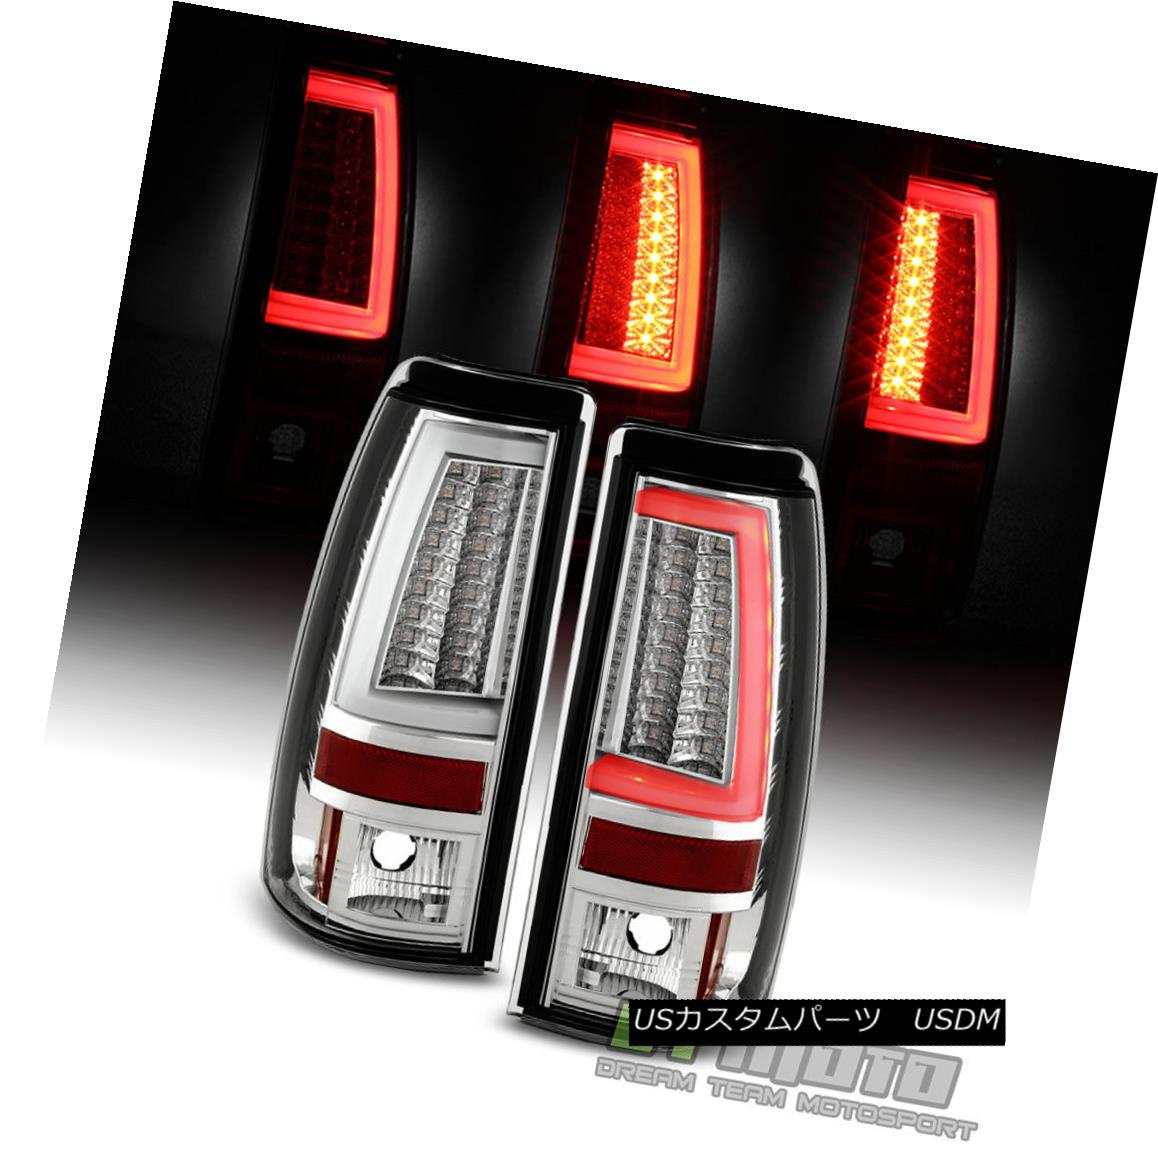 テールライト 1999-2002 Chevy Silverado/Sierra 1500 2500 3500 LED Tube Tail Lights Brake Lamps 1999-2002 Chevy Silverado / Sier ra 1500 2500 3500 LEDチューブテールライトブレーキランプ